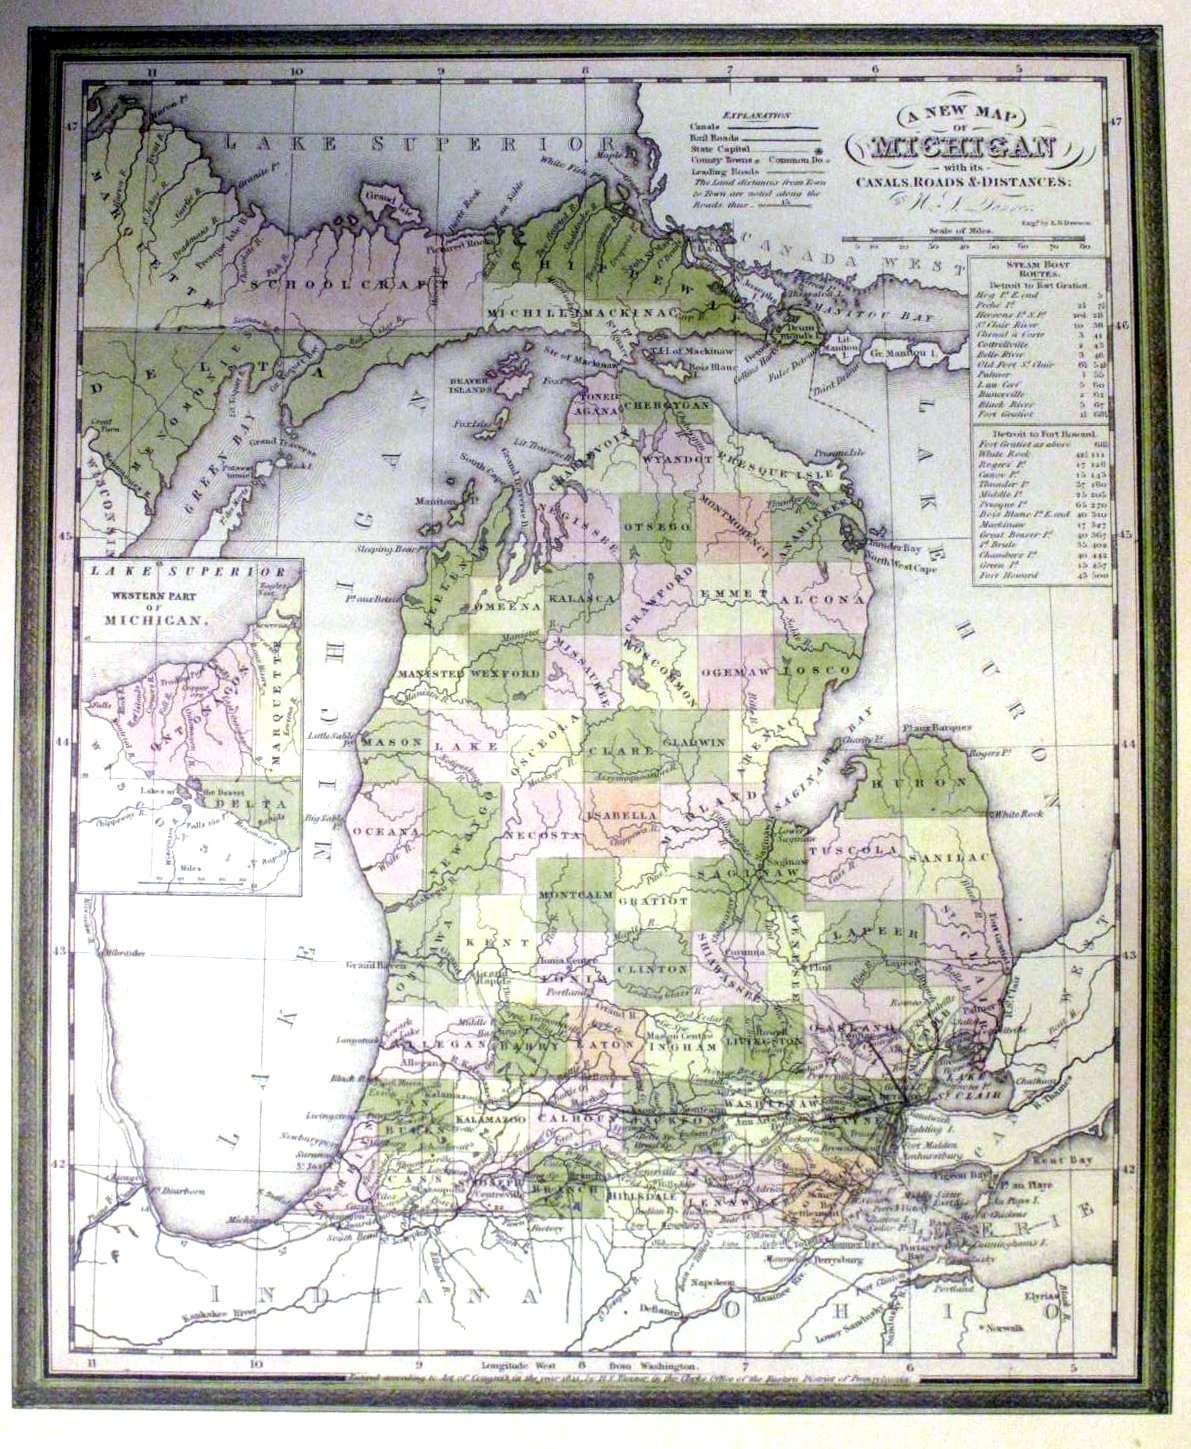 Road Maps Of Michigan Map.Maps Of Macomb County Michigan And Locals And Locations